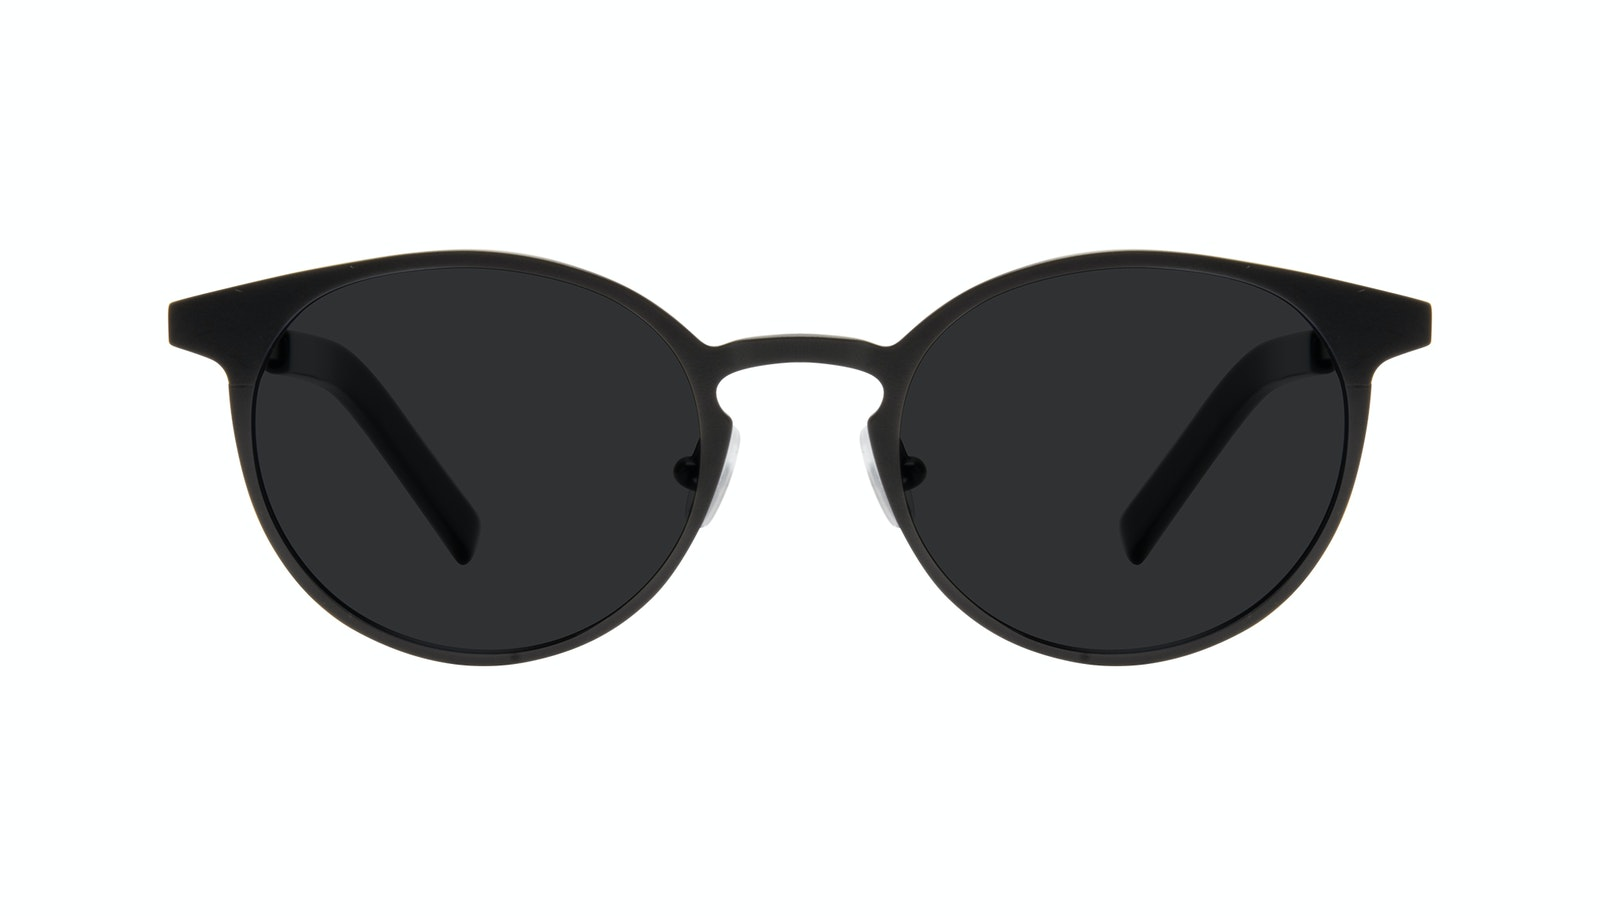 Affordable Fashion Glasses Round Sunglasses Men Cut Onyx Matte